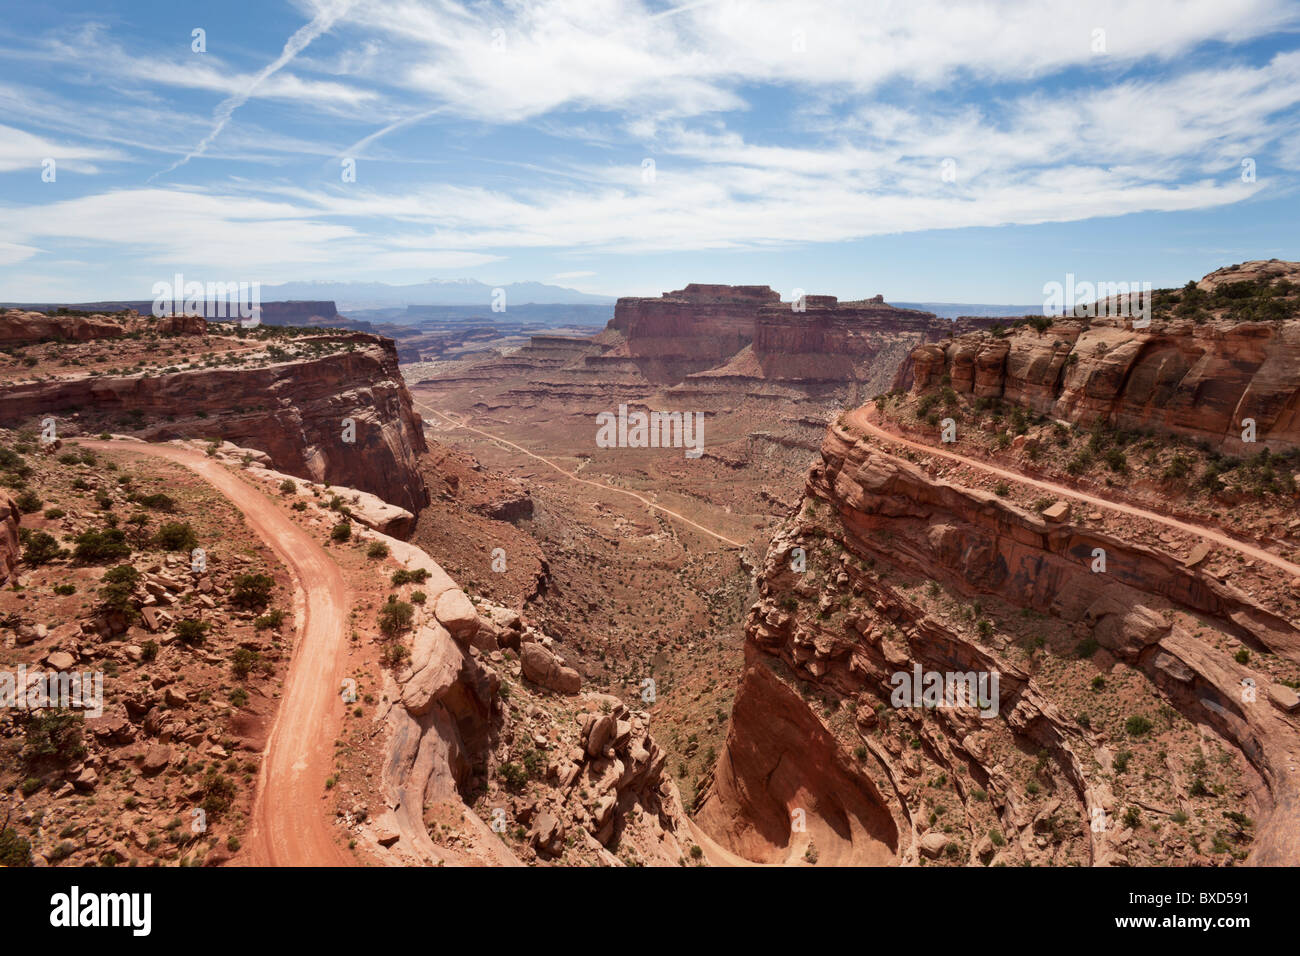 Looking into Canyonlands National Park. - Stock Image